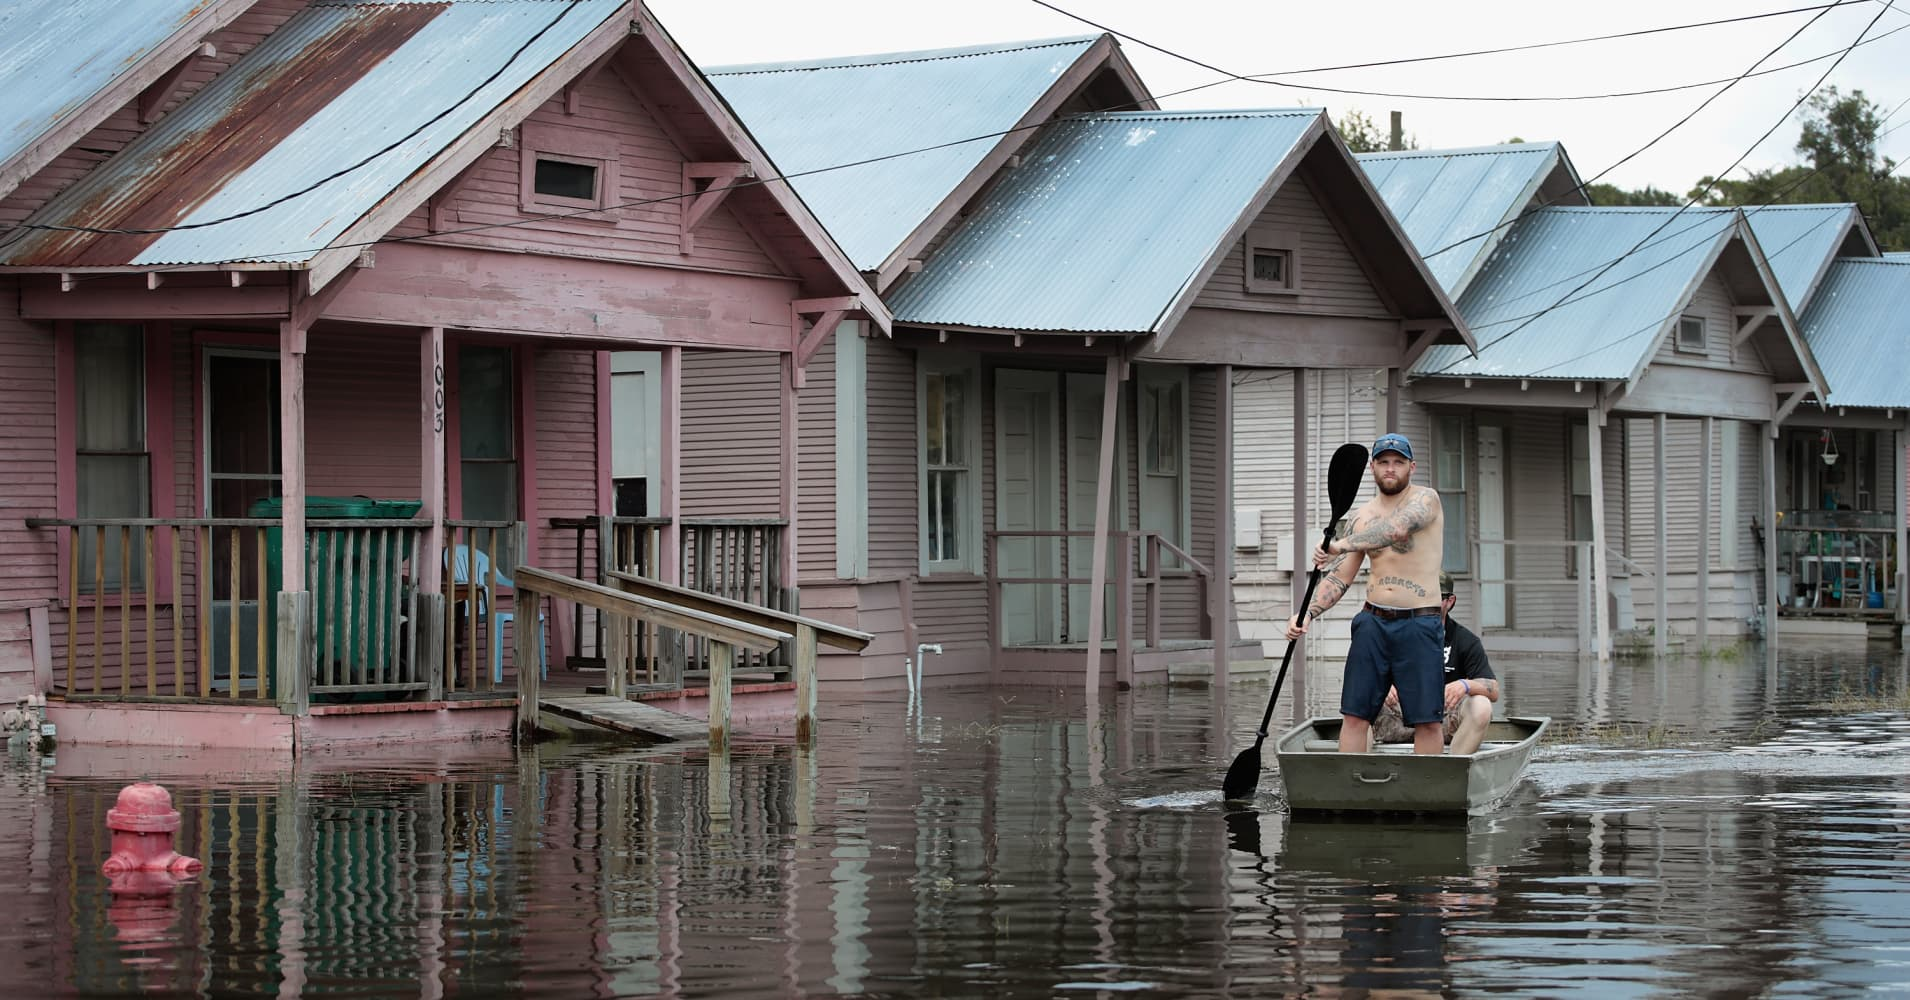 Potential for foreclosure crisis because of climate change is real